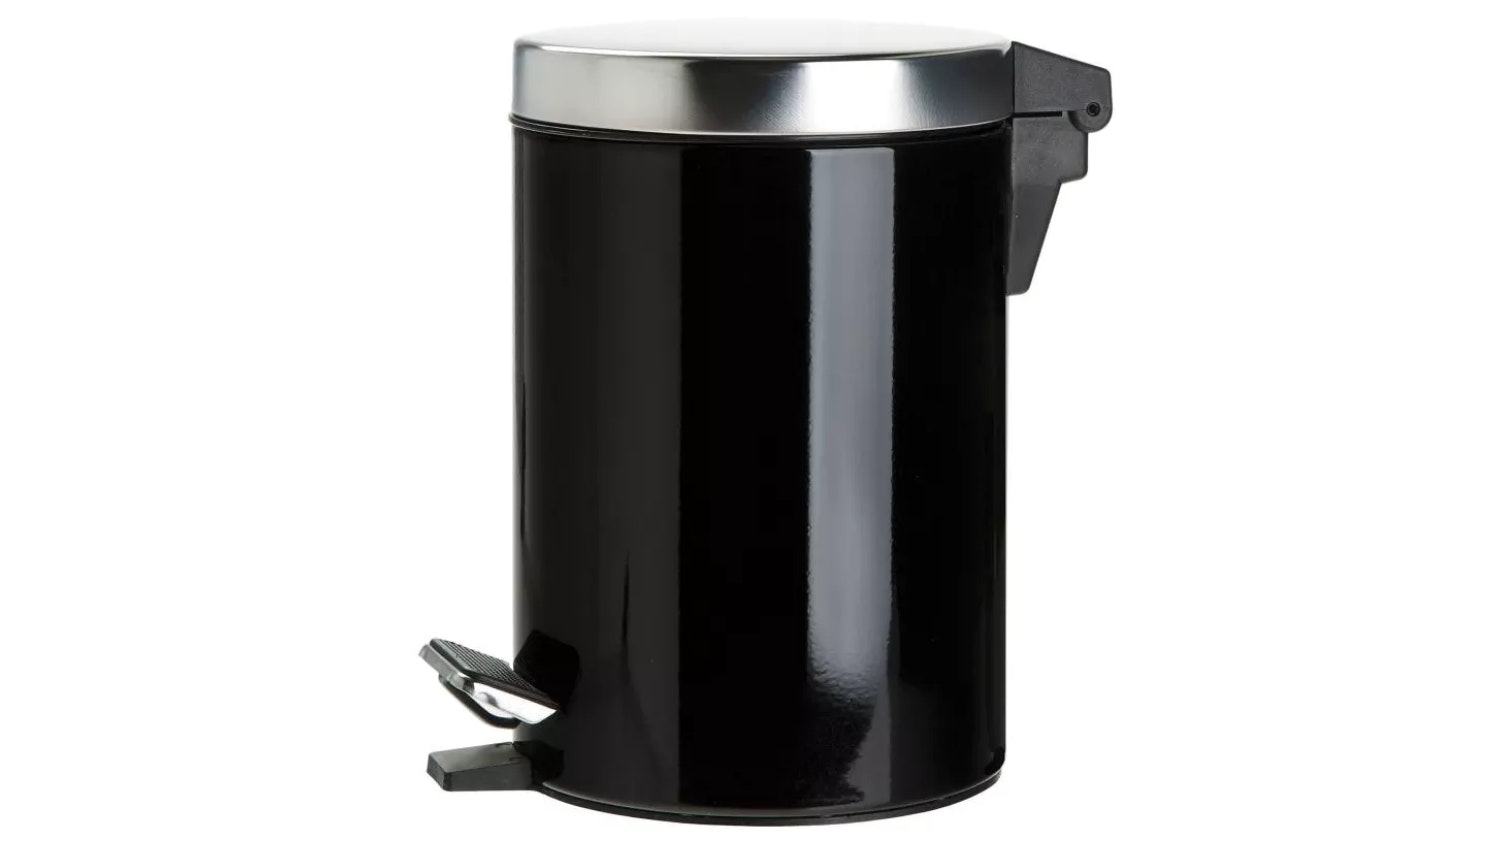 Linen House Coated Stainless Steel Waste Bin - Black